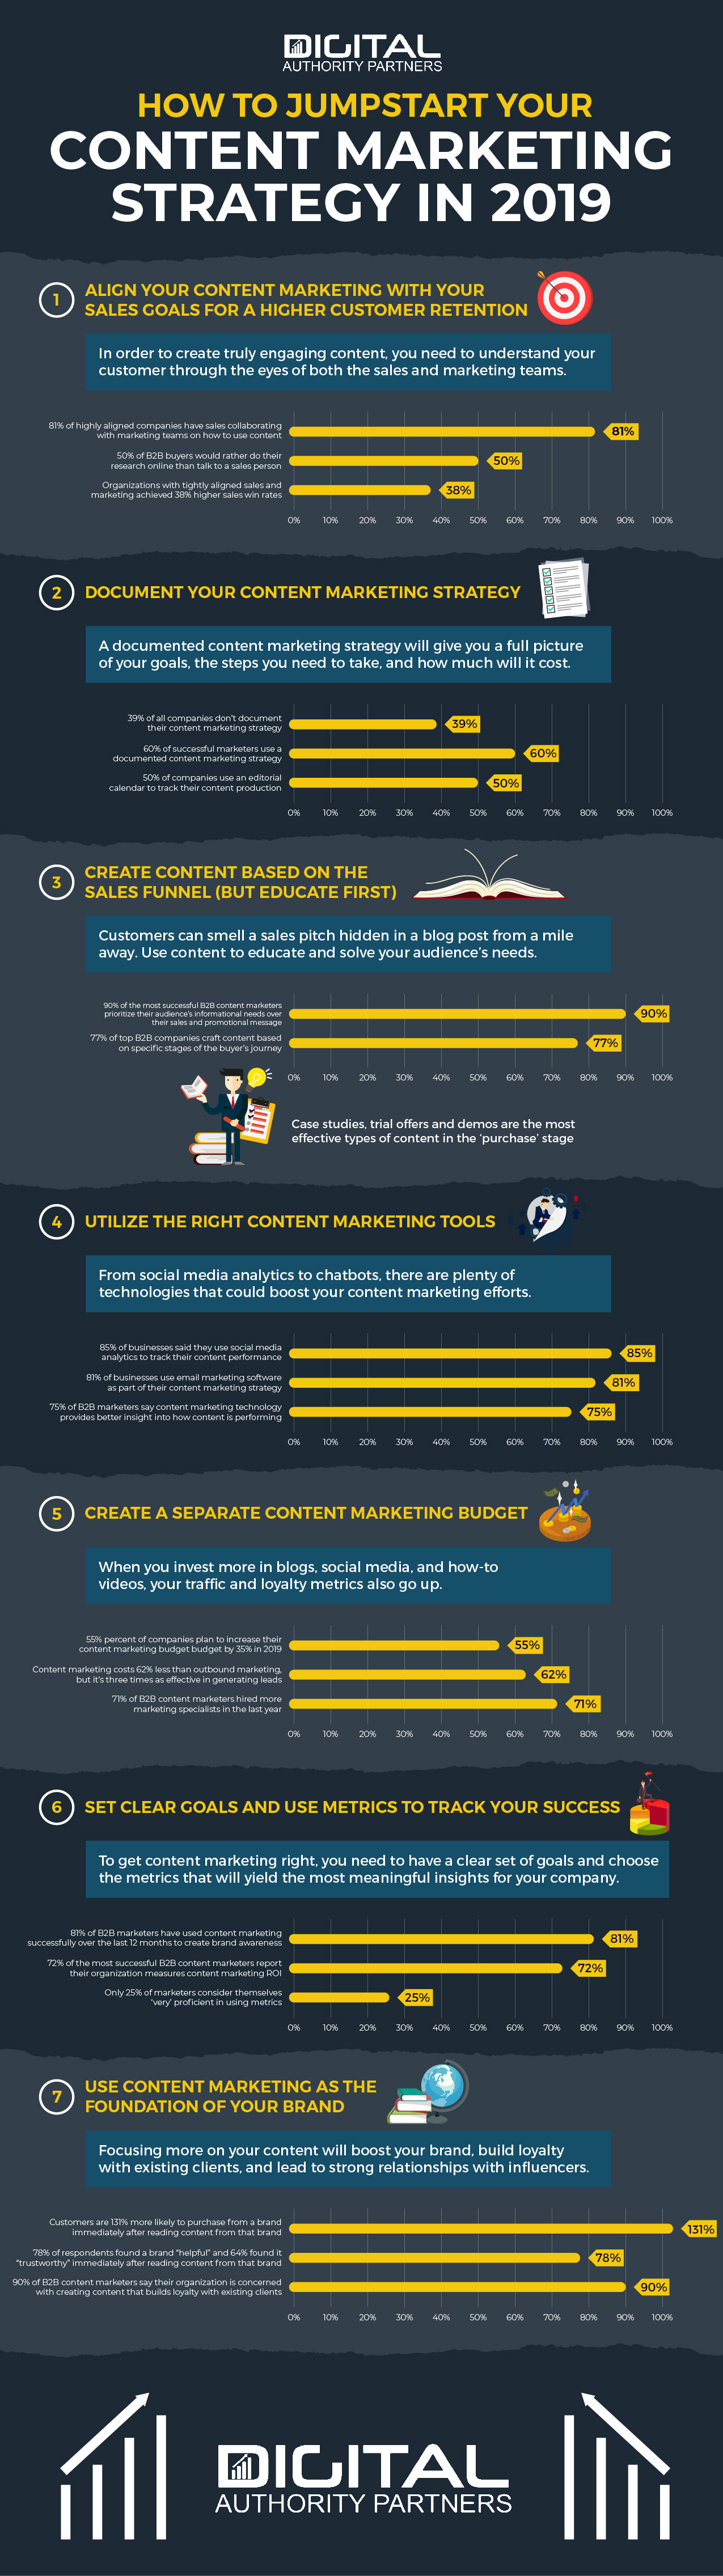 Infographic: How to jumpstart content marketing strategy in 2019